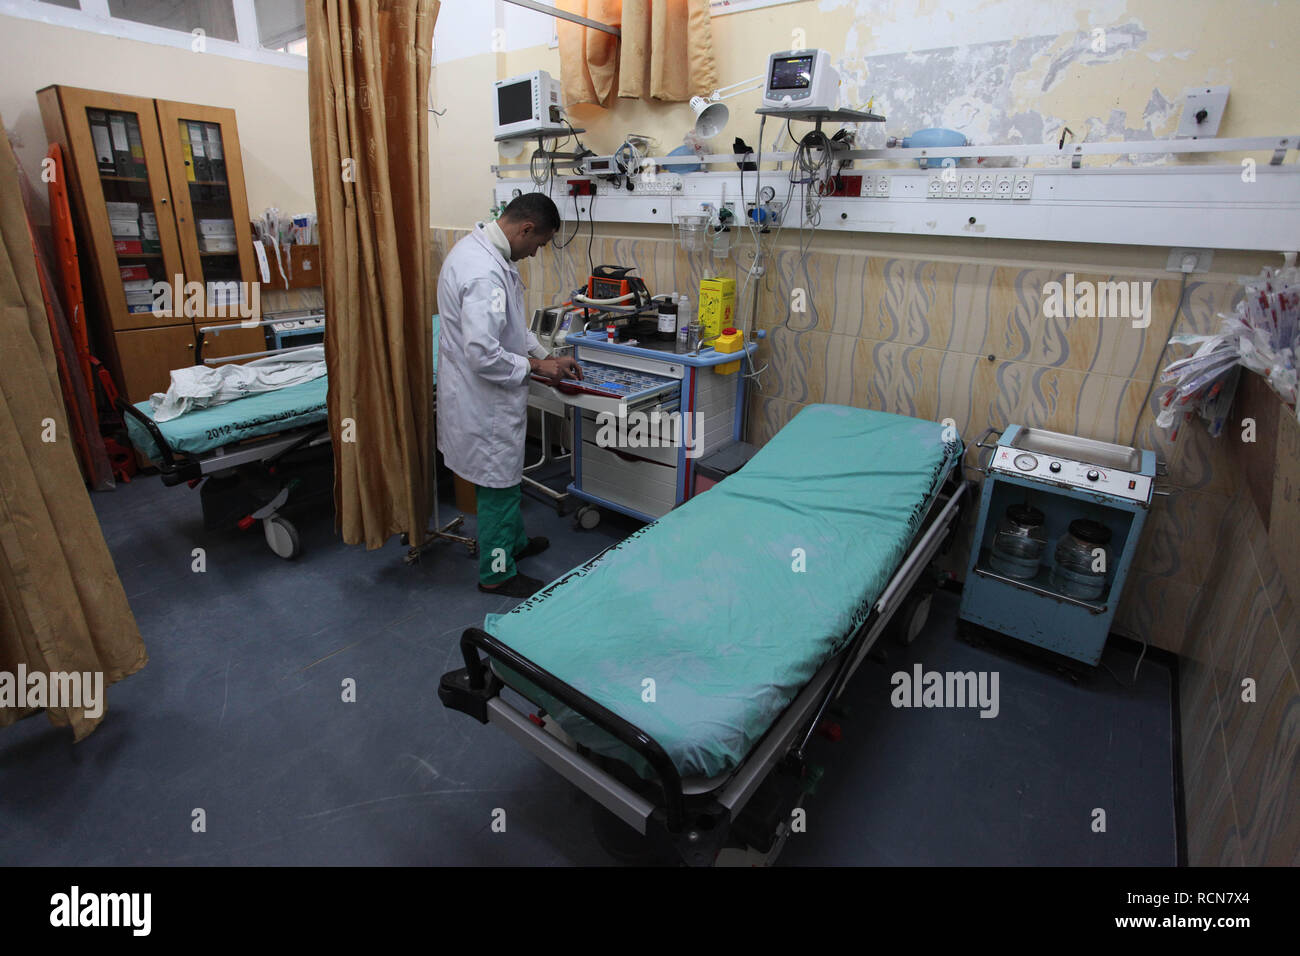 January 16, 2019 - Beit Hanoun, Gaza Strip, Palestinian Territory - A Palestinian nurse works at Beit Hanoun hospital, during the continuing crisis of power outages, in Beit Hanoun in the northern Gaza Strip on January 16 2019. Ashraf al-Qadra, Spokesperson of the Palestinian Ministry of Health in the Gaza Strip, warned that some health facilities and services would stop in the Gaza Strip due to the acute fuel crisis and the inability of the Ministry of Health to supply the fuel that is needed by hospitals and health centers in the Gaza Strip (Credit Image: © Mahmoud Ajjour/APA Images via ZUM - Stock Image